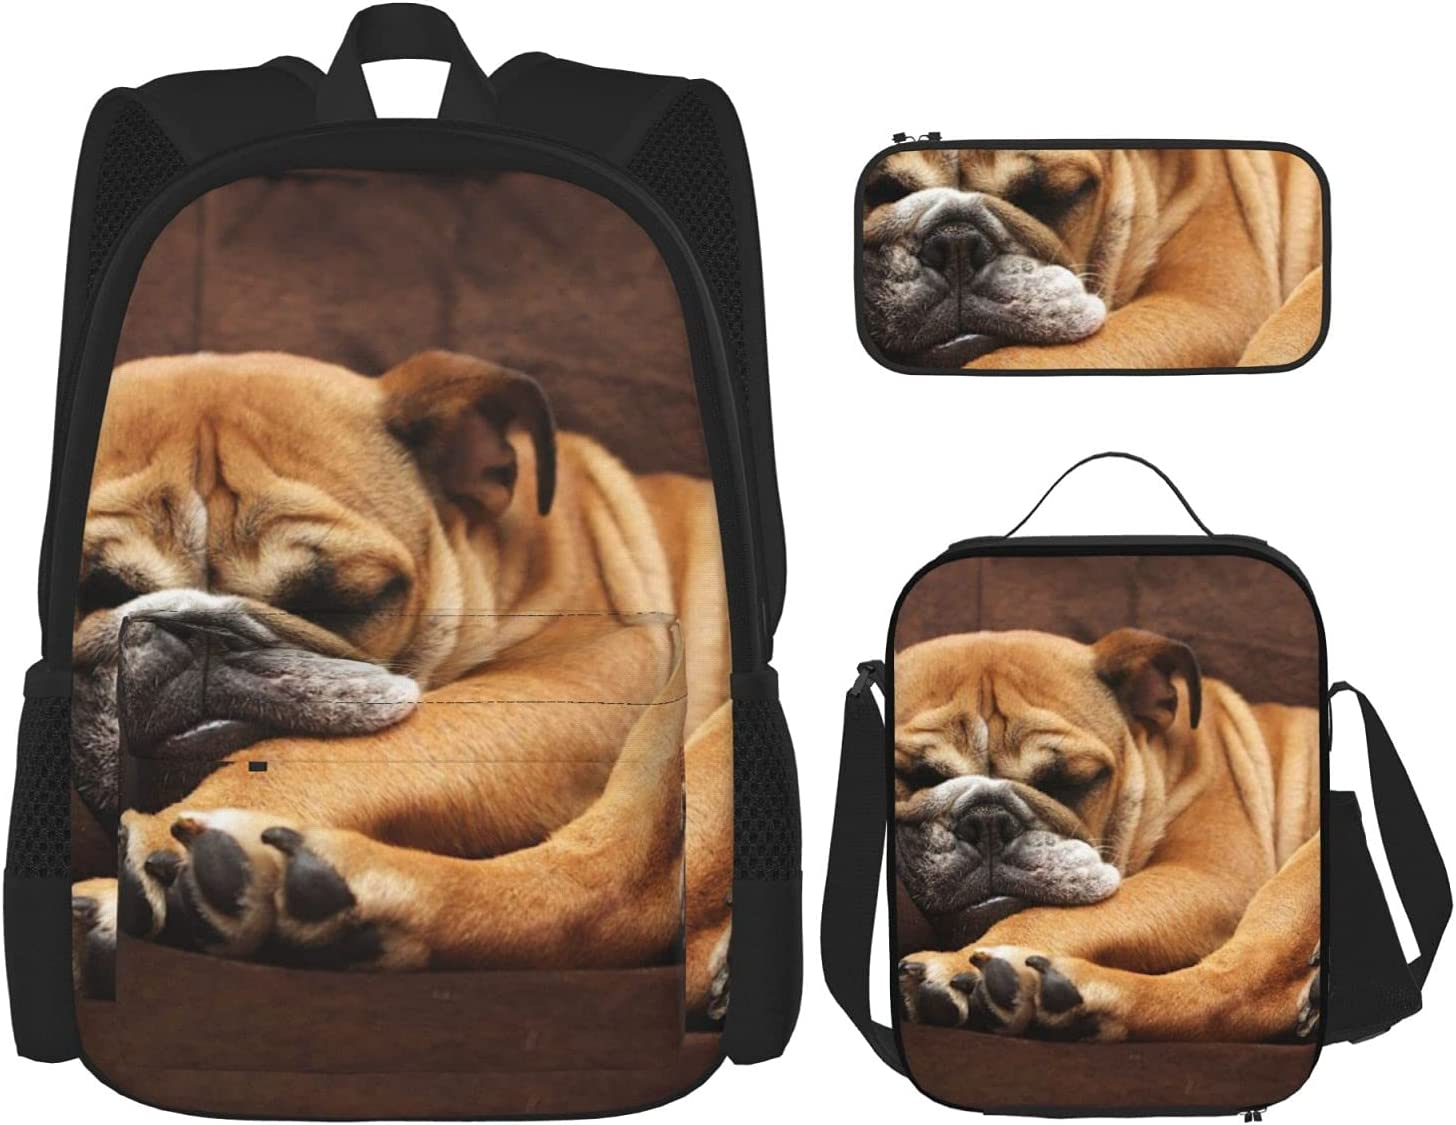 40% OFF Cheap Sale English Bulldog Puppy Dog Backpack Set F Three-Piece Combination Online limited product